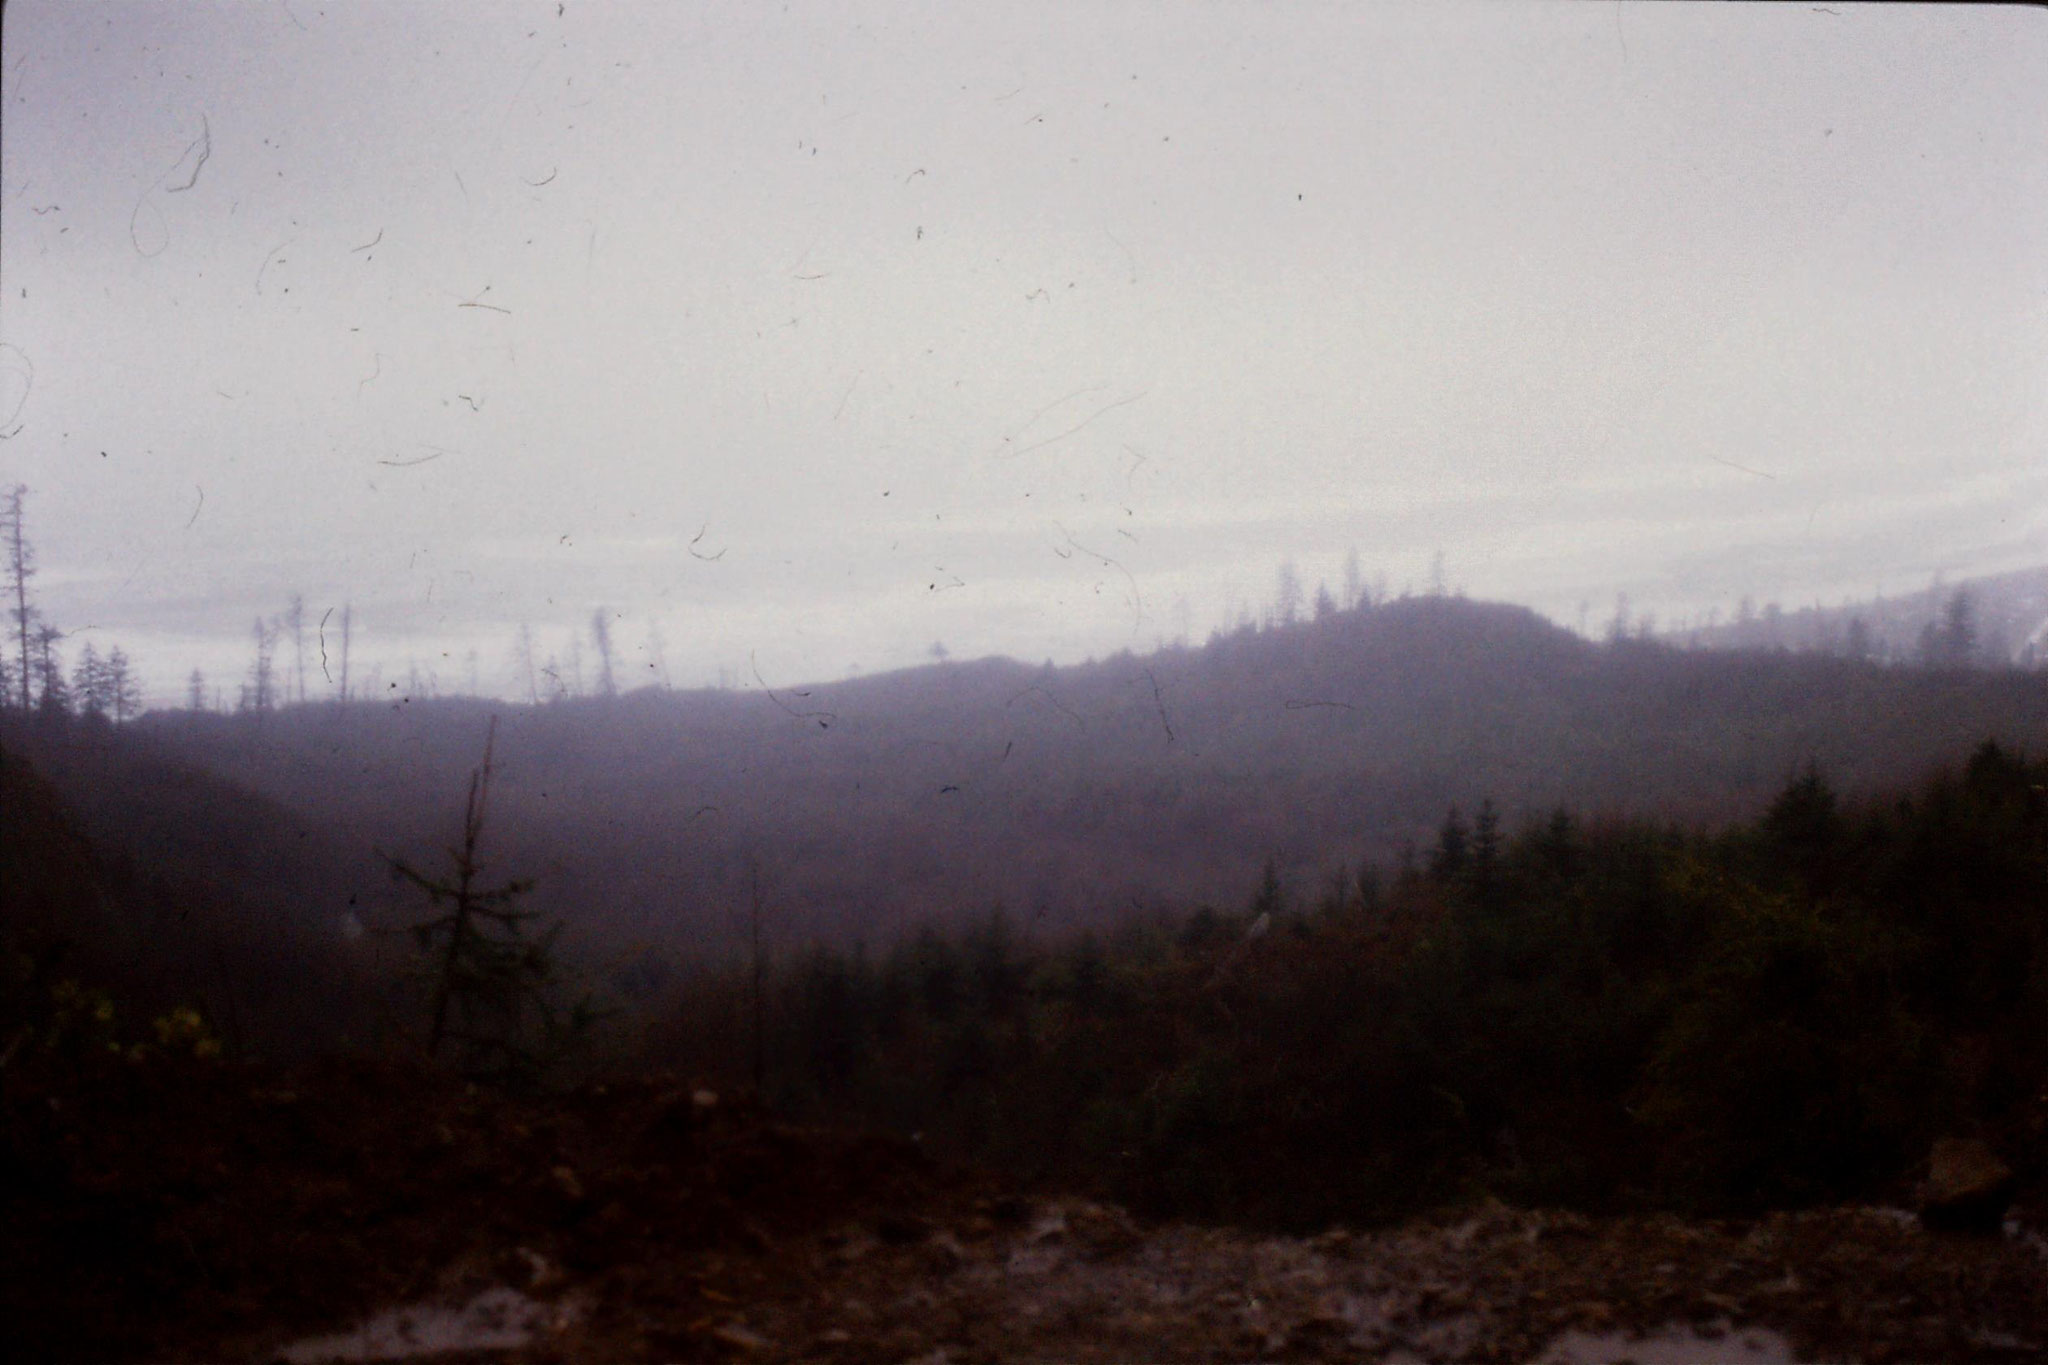 12/2/1991: 32: Pacific Ocean from Cape Meares